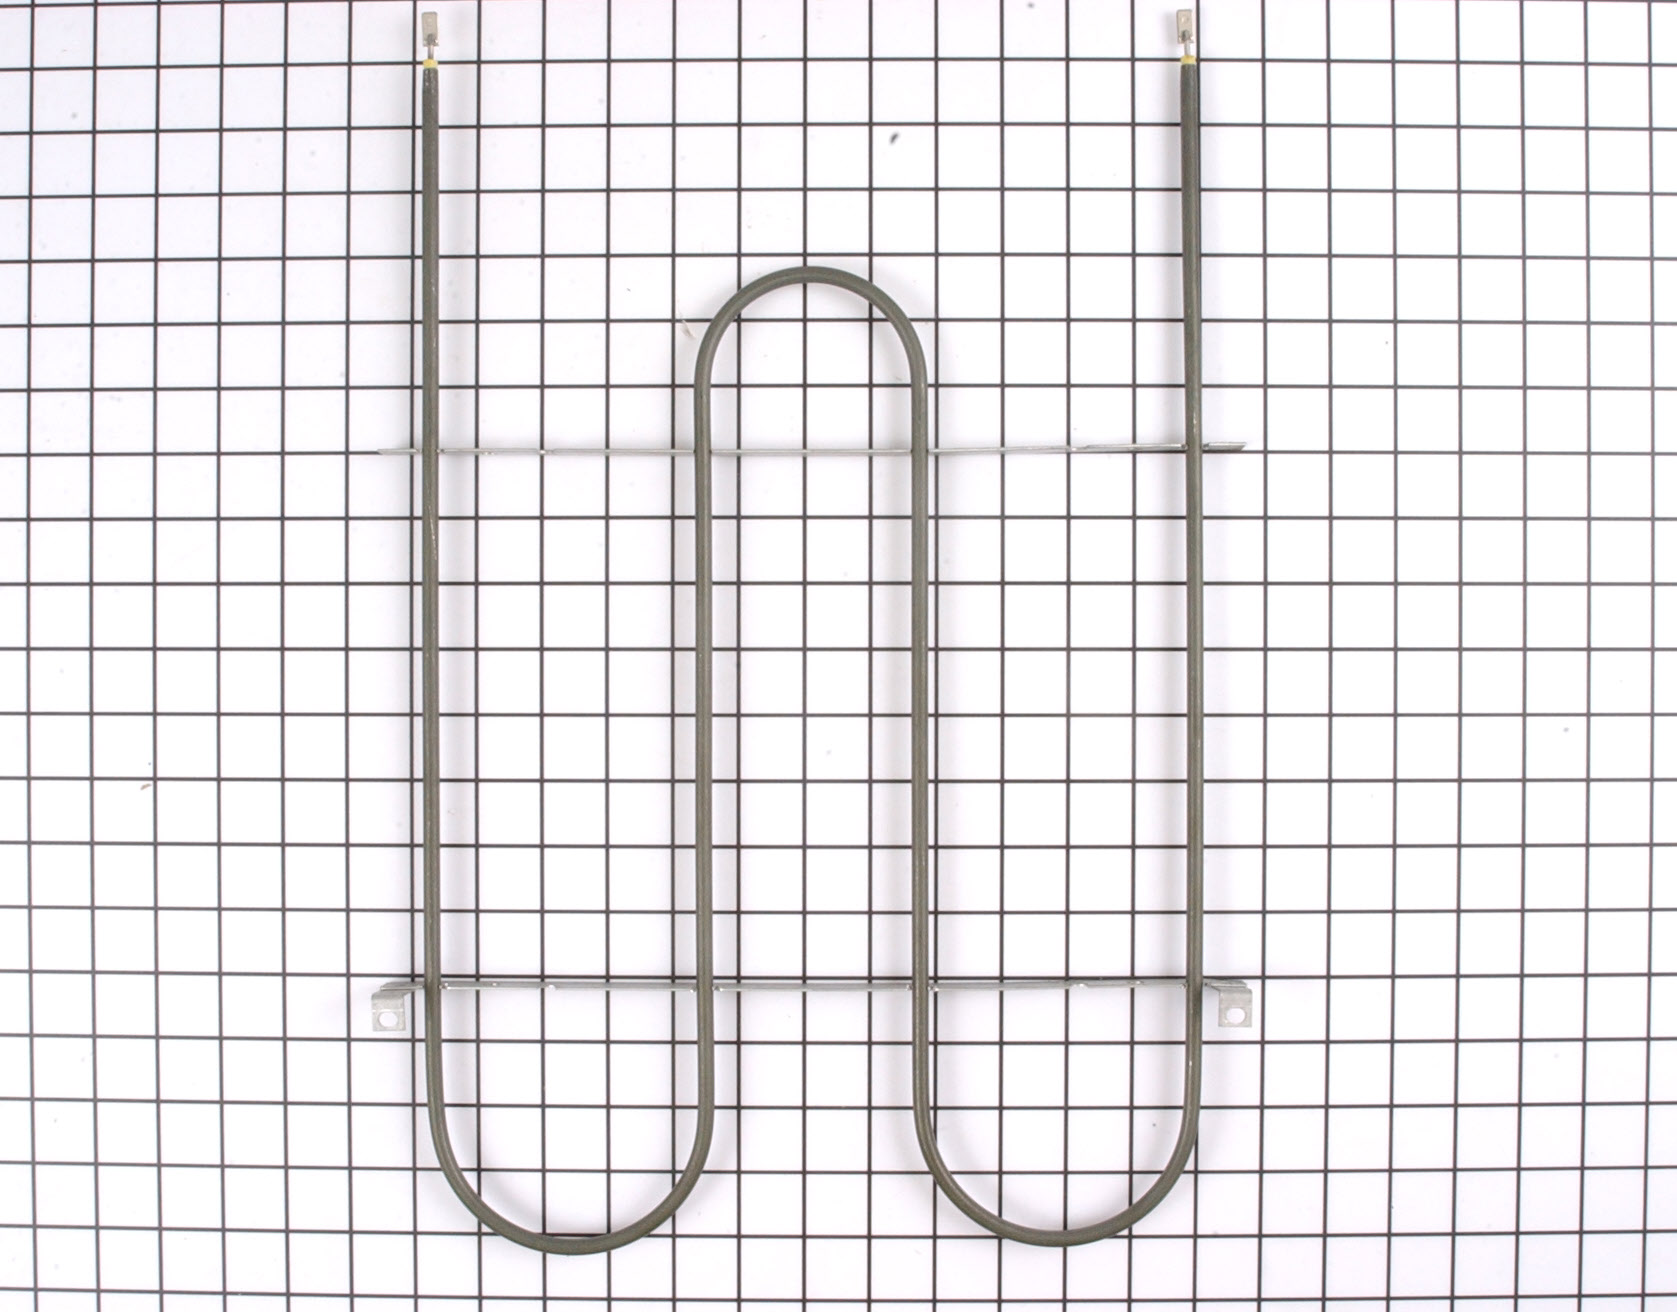 Kenmore Range/Stove/Oven Part # WP660579 - Broil Element